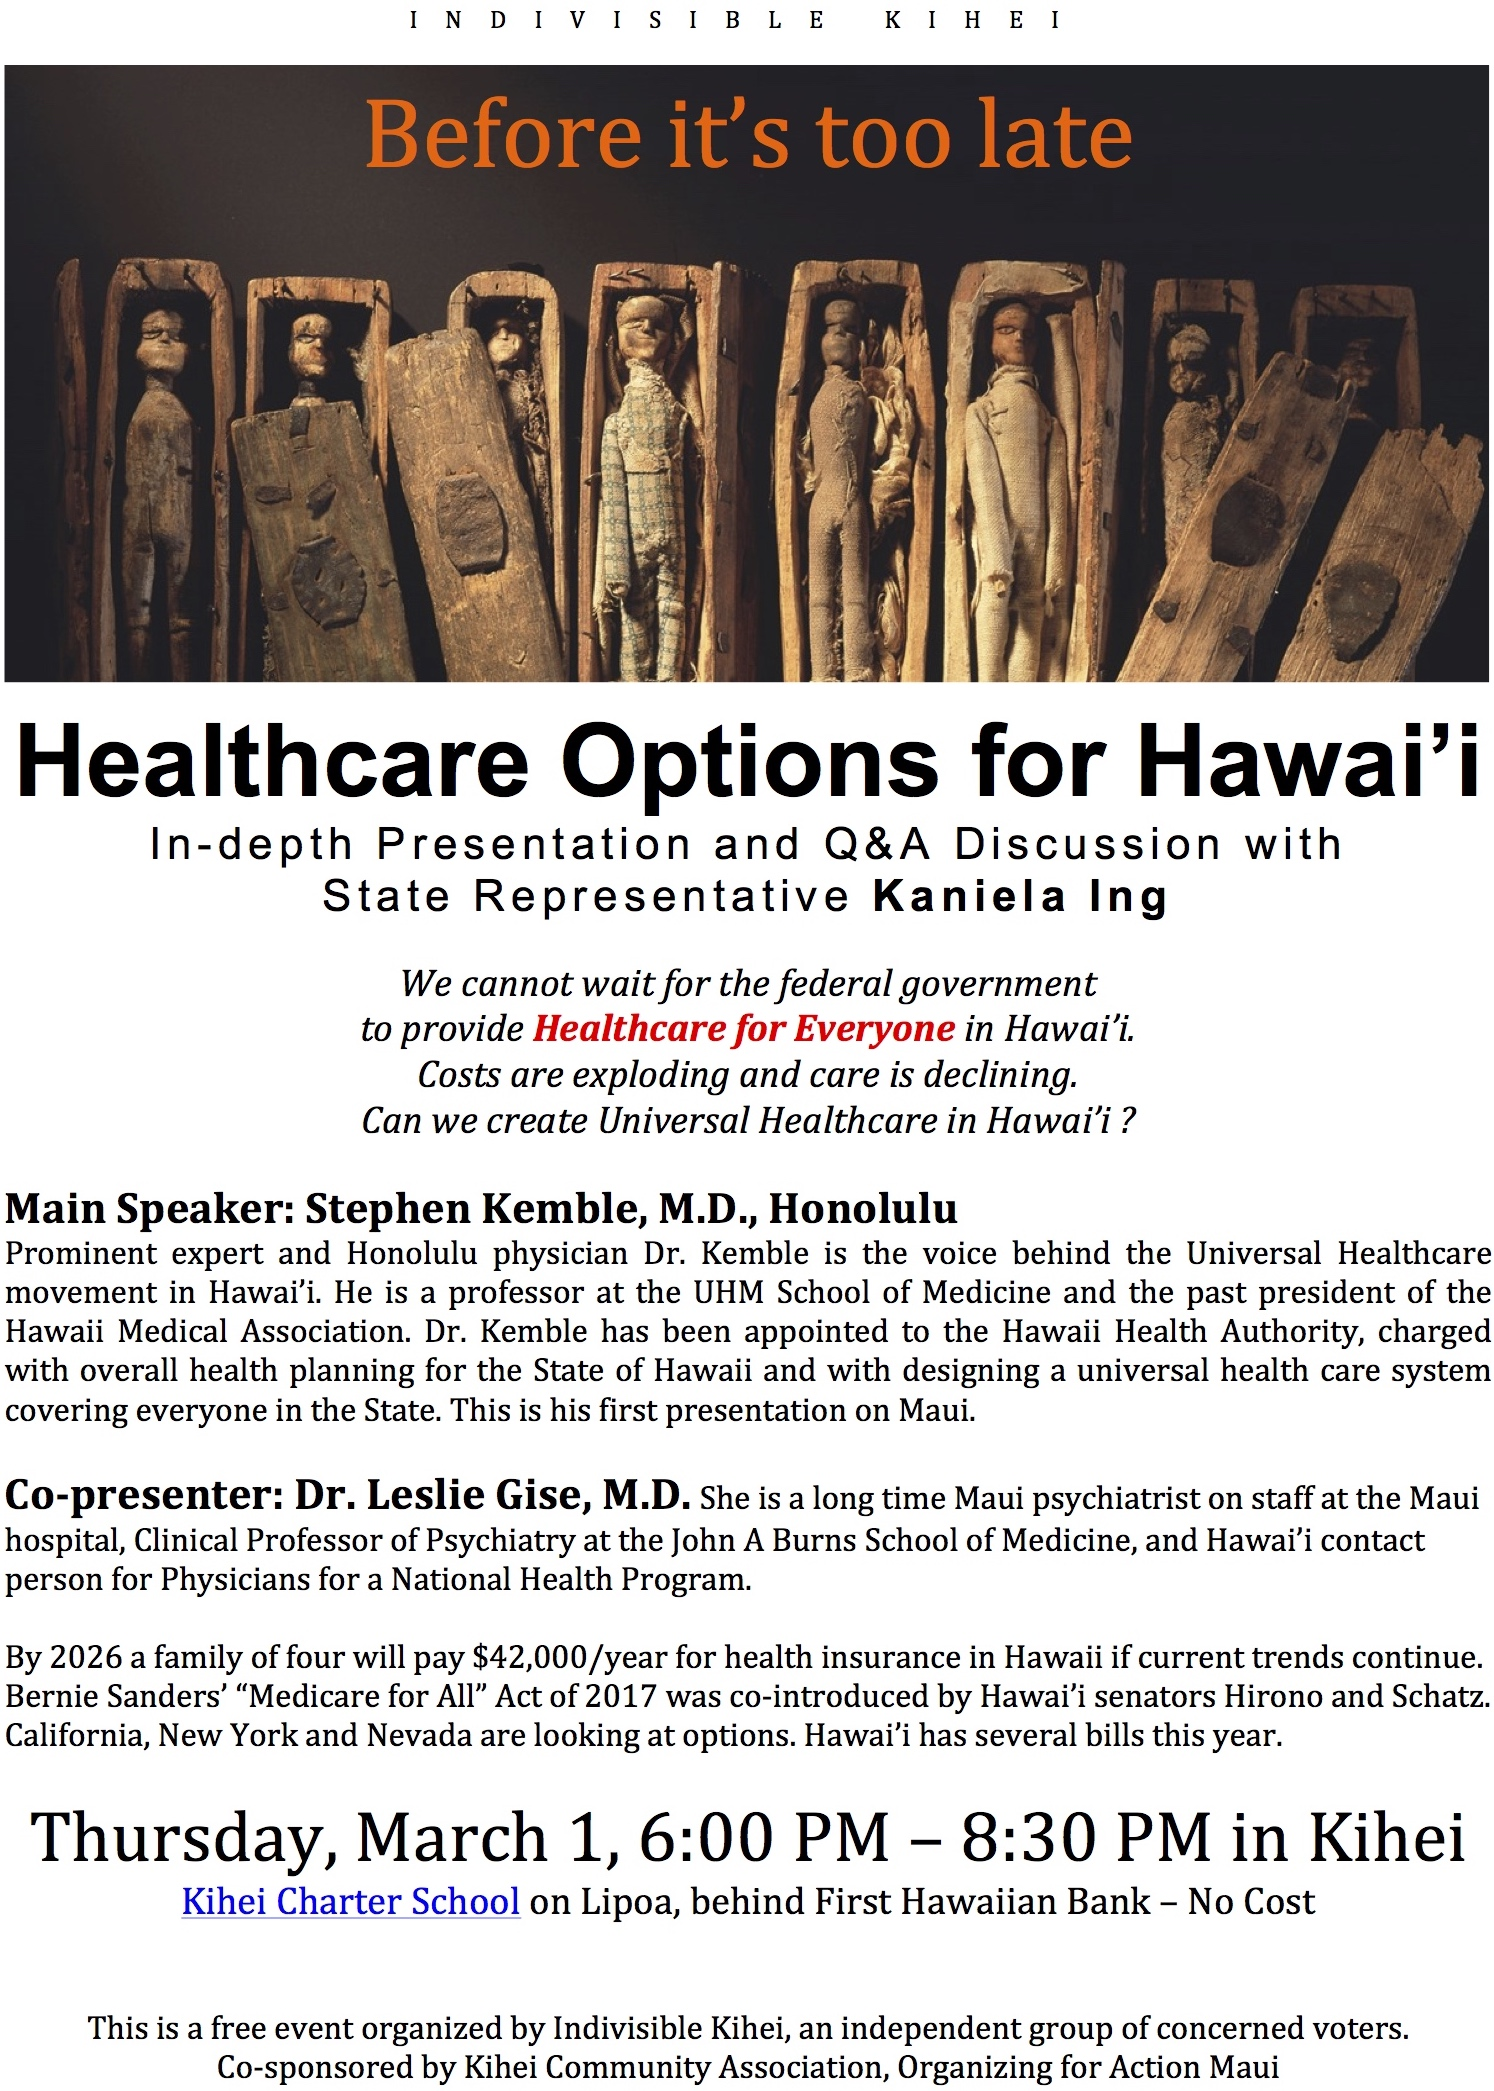 Public Meeting in Kihei March 1 – Healthcare for All Hawaii?